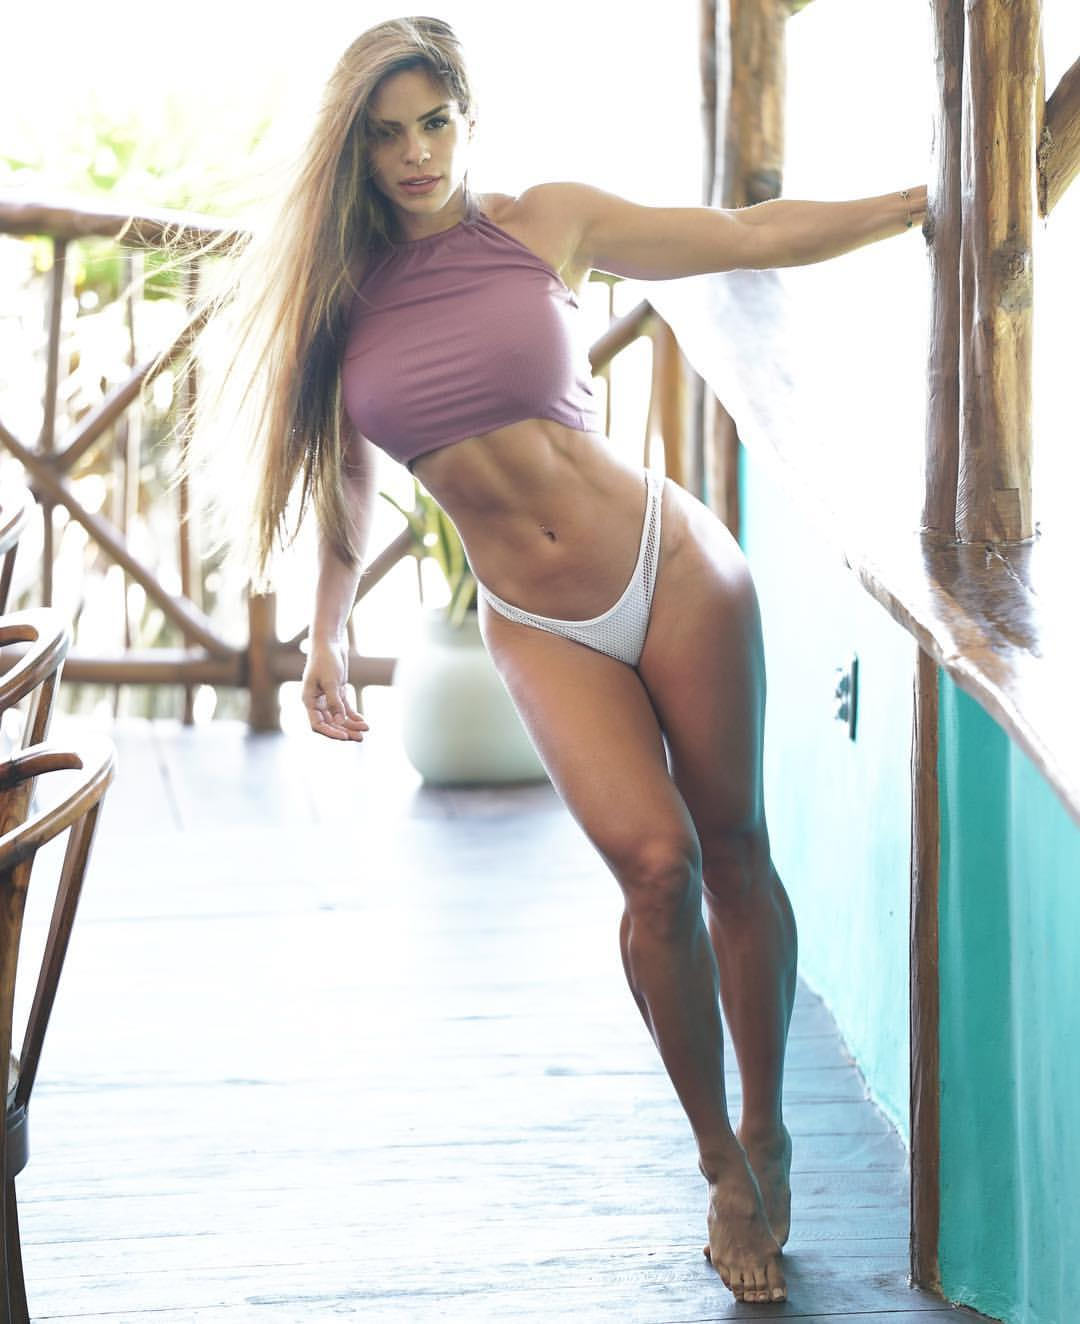 Girls with great body